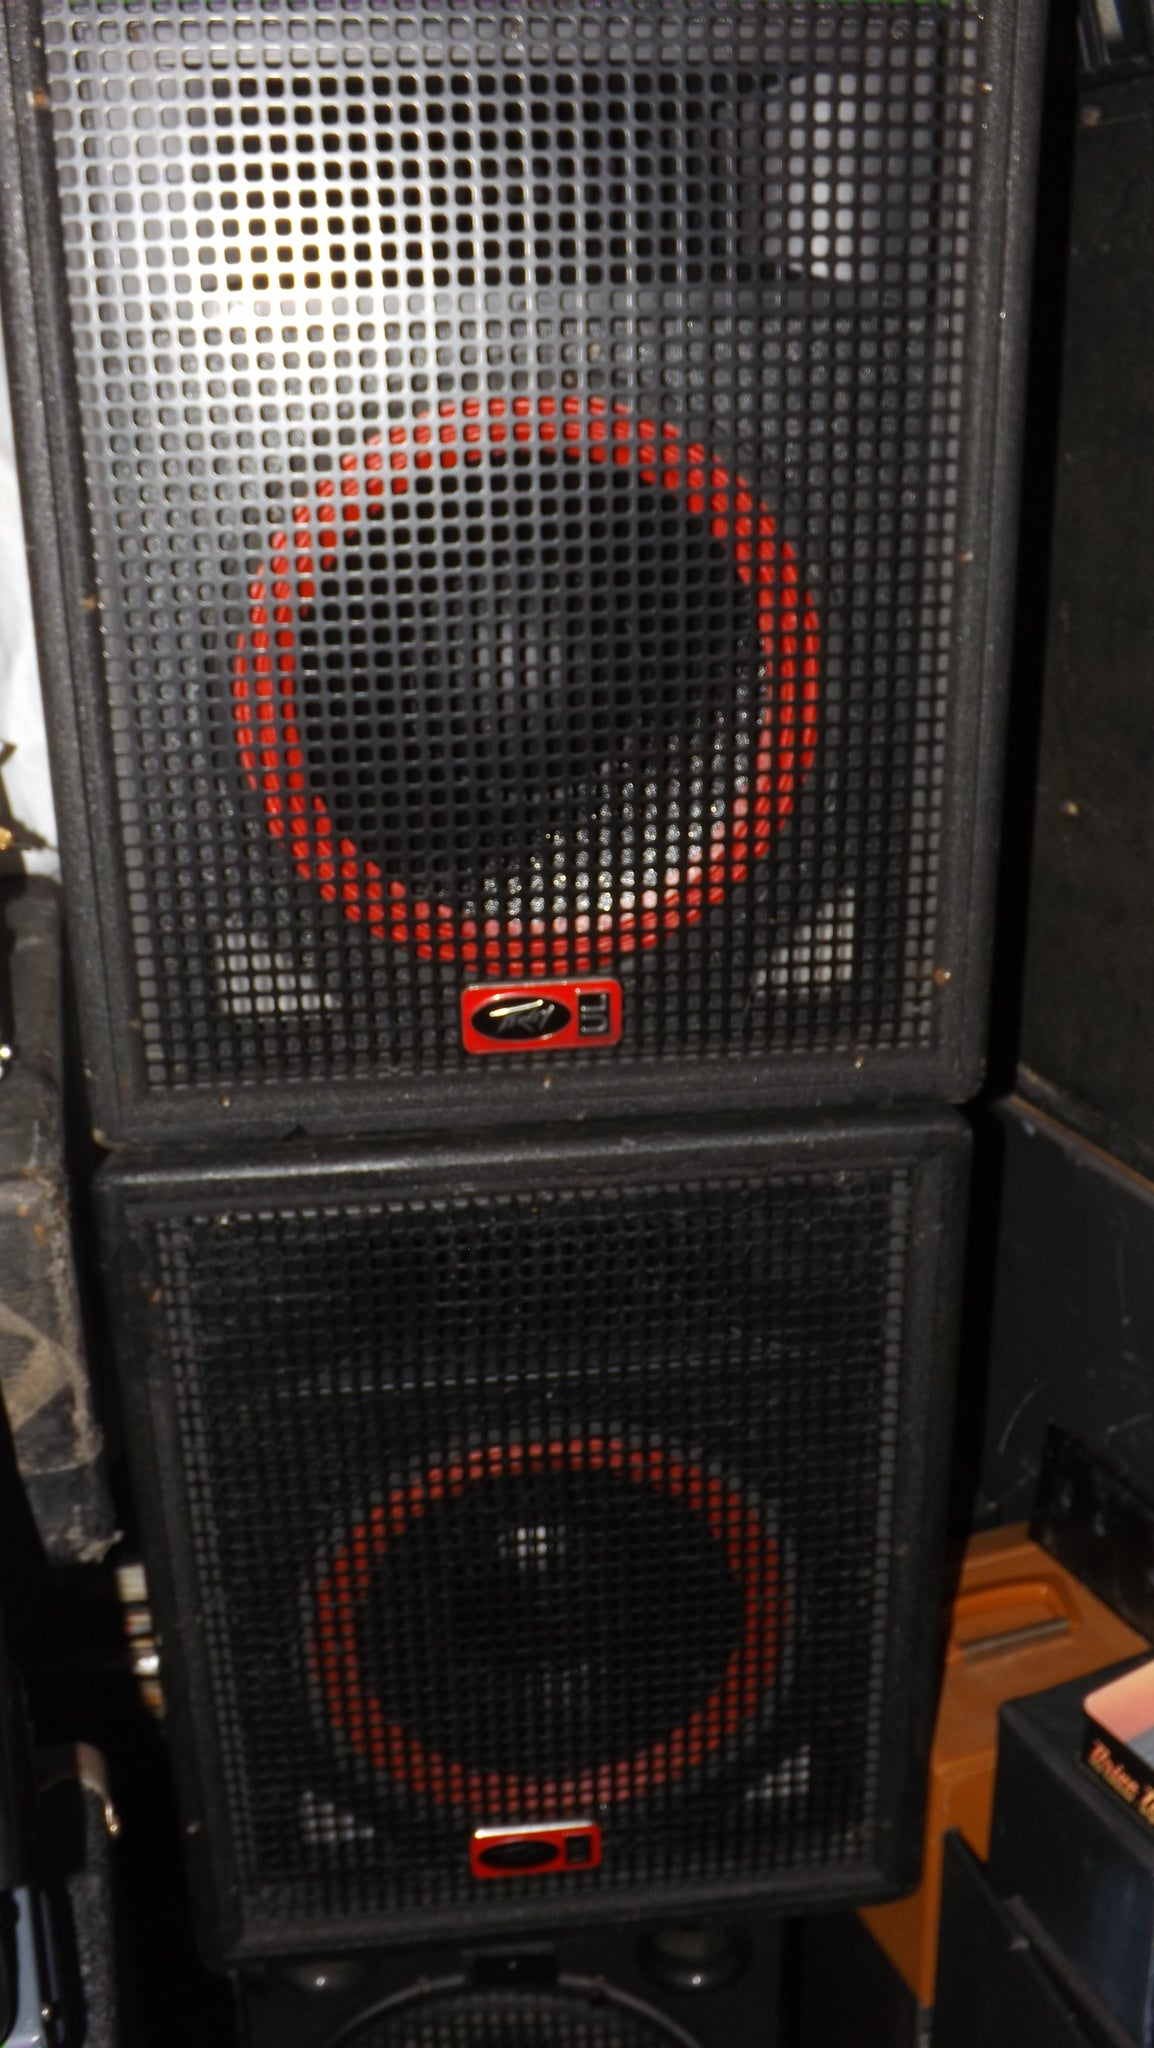 Peavey UL12 Speakers